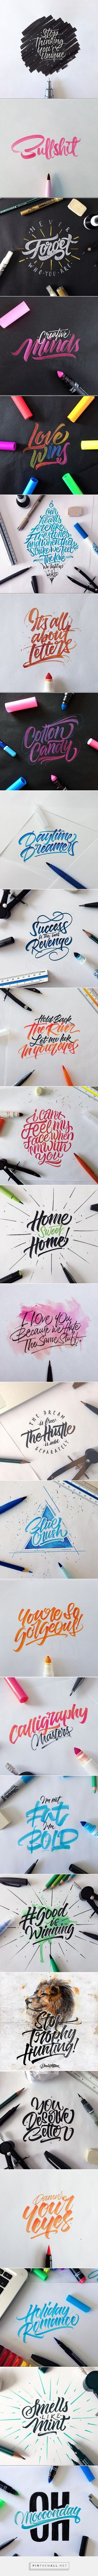 Use @PicLab app to add similar artwork and typography to your photos! #PicLabHD features the ability to import your own .pngs into your photos. -- Crayola & Brushpen Lettering Set 3 by David Milan Inspiration via: https://www.behance.net/gallery/29124629/Crayola-Brushpen-Lettering-Set-3